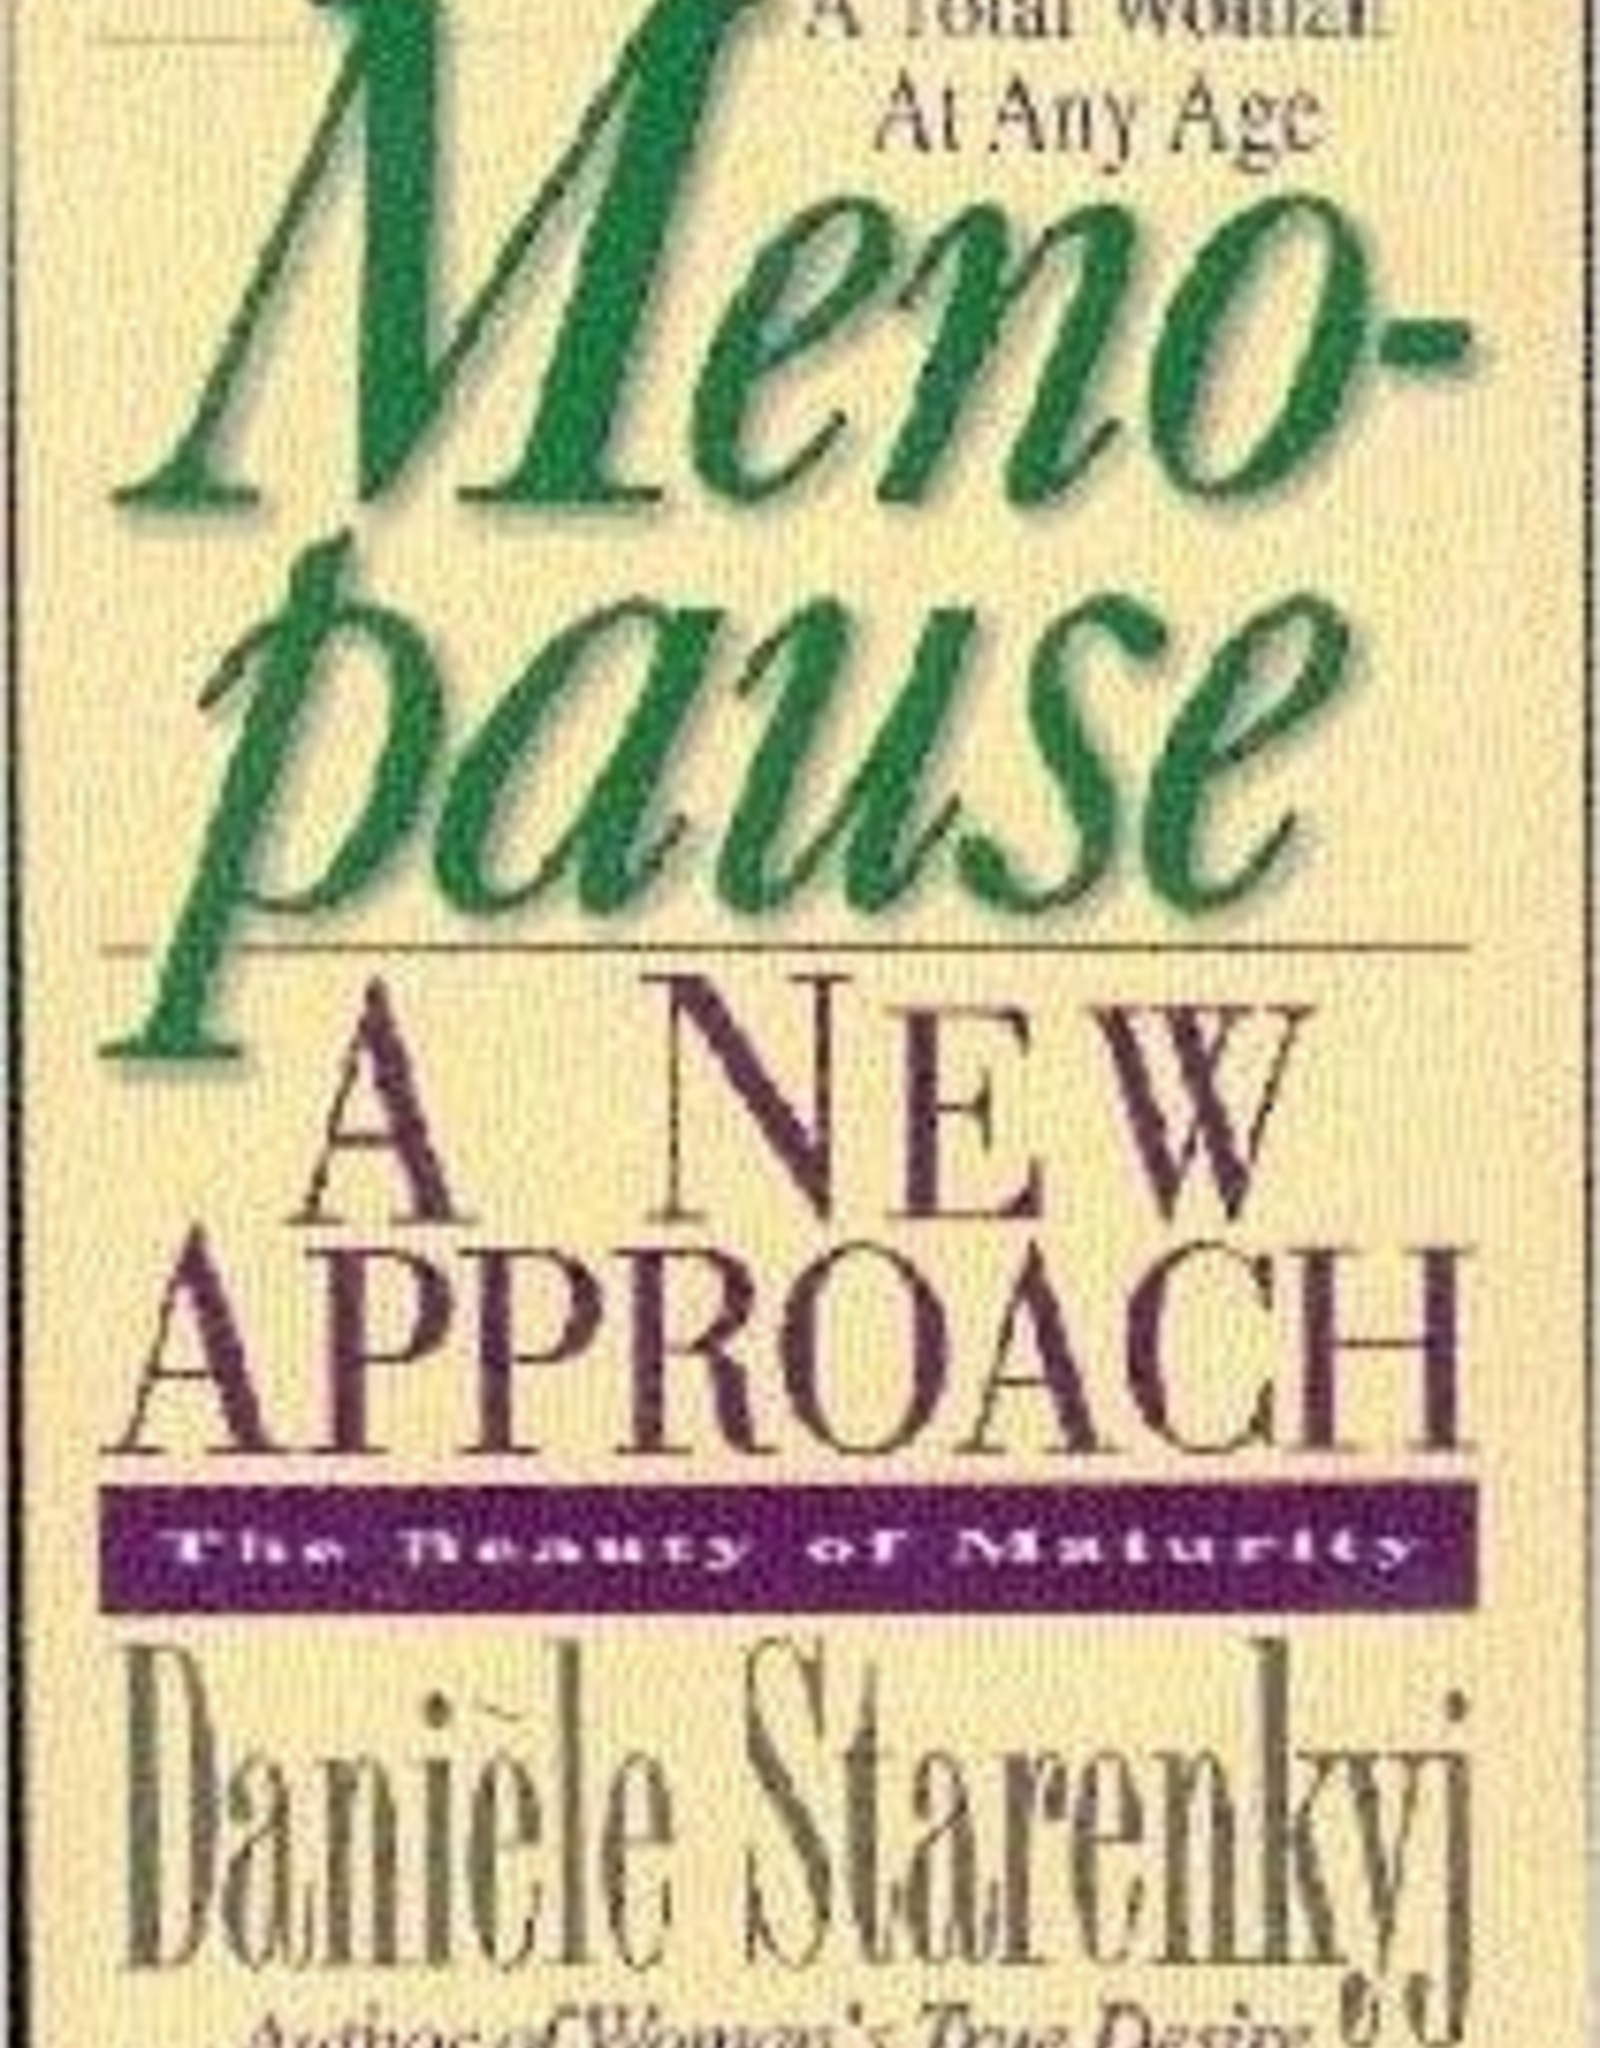 Danièle Starenkyj Menopause - A new approach